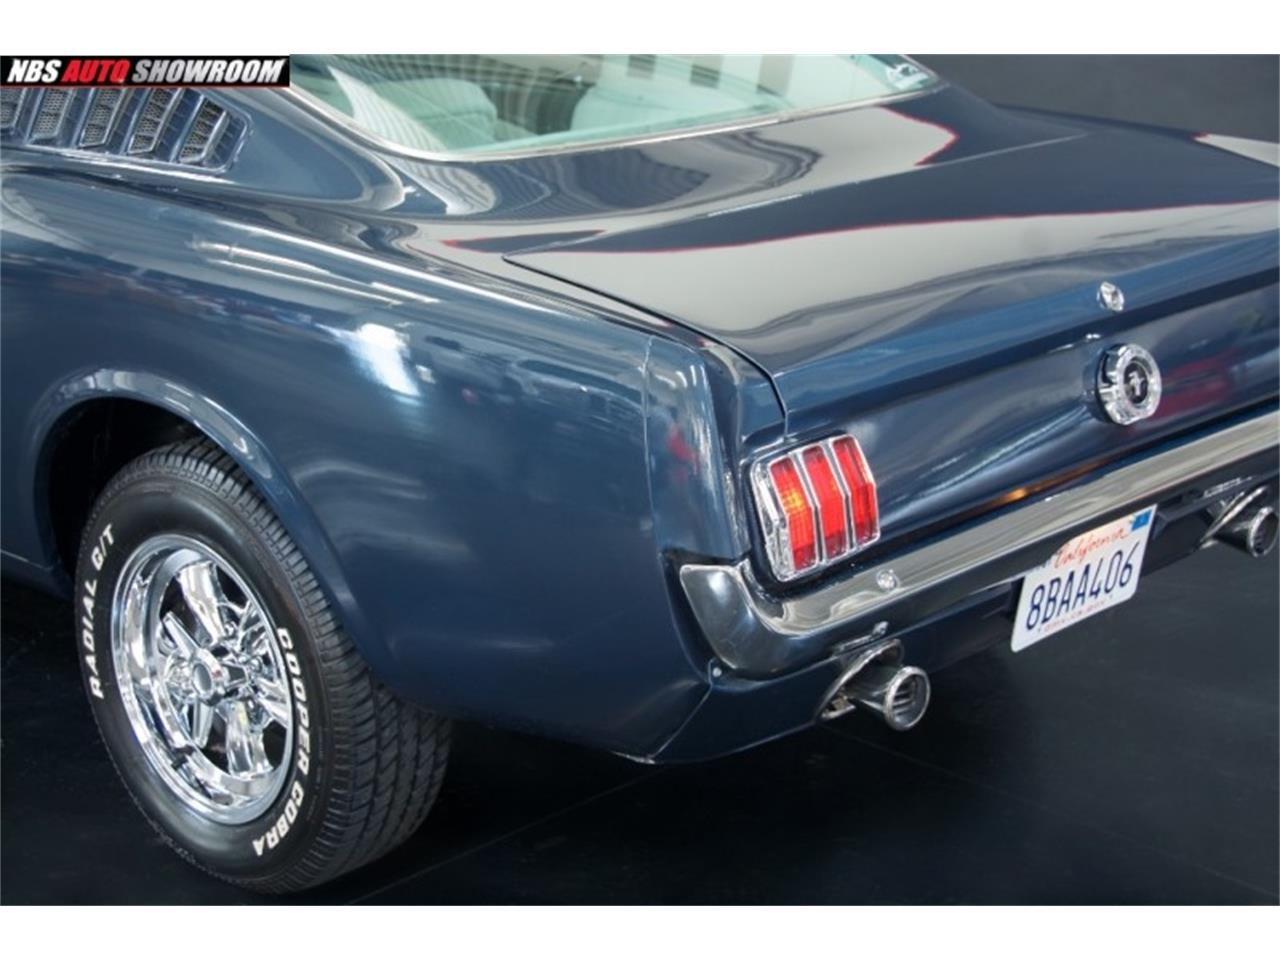 Large Picture of Classic 1965 Mustang Offered by NBS Auto Showroom - PHR5